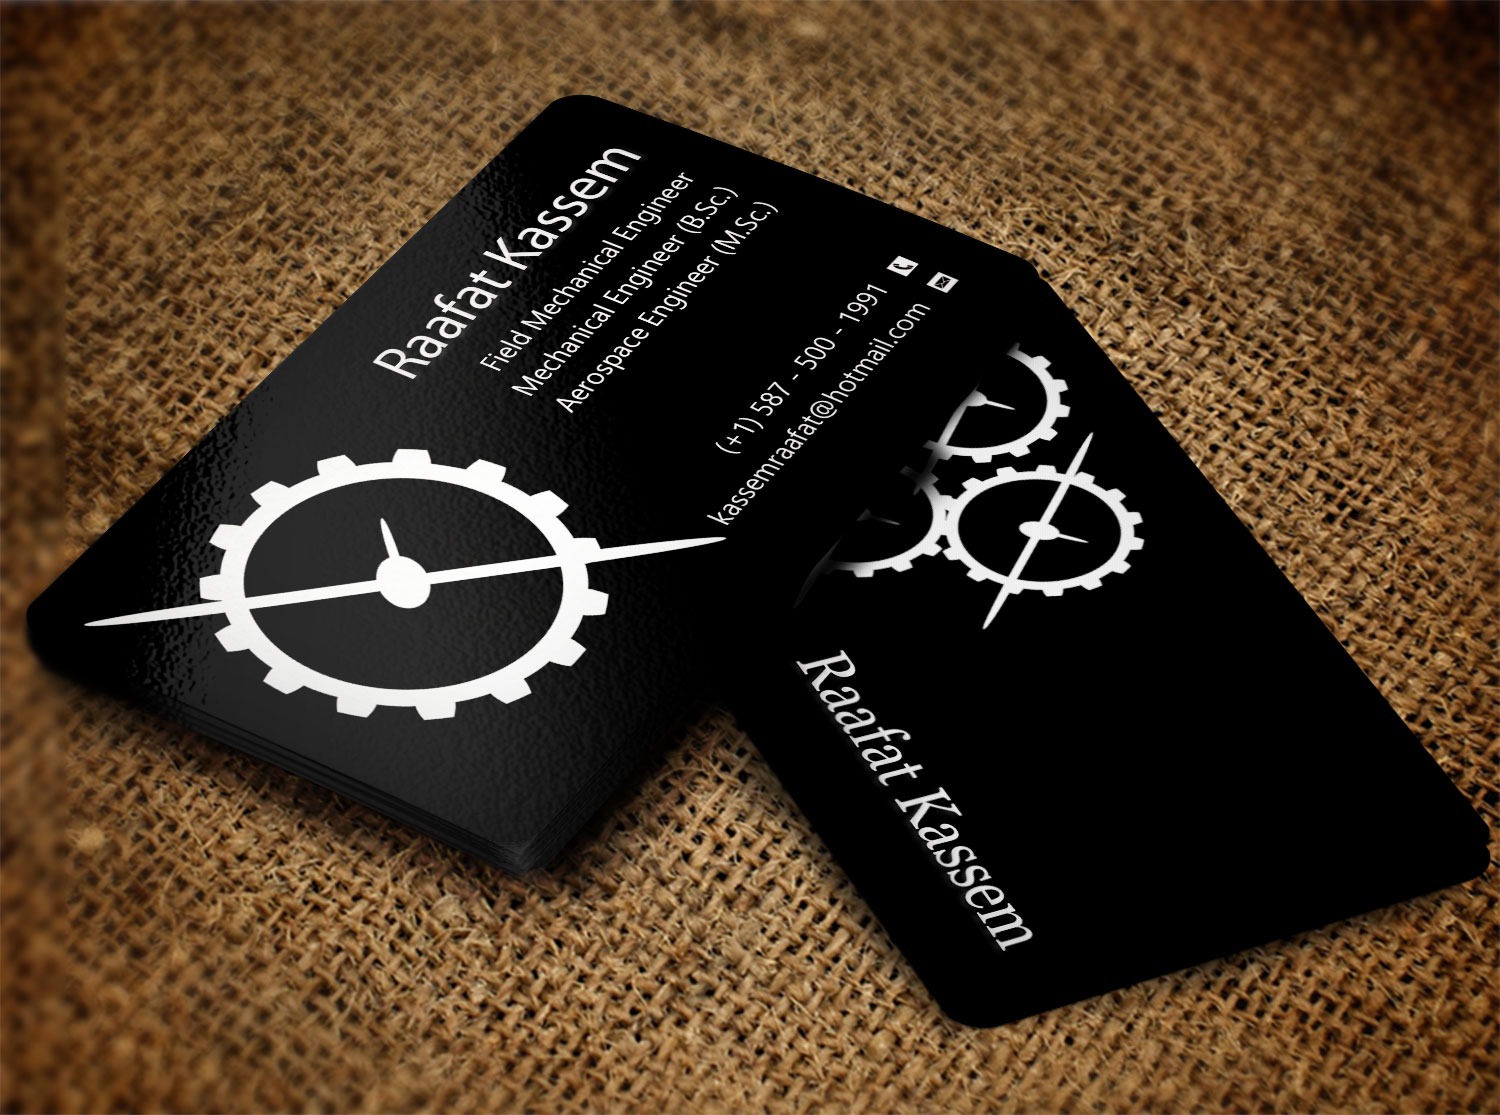 Business card for professional engineer gallery card design and beautiful engineering business cards templates images business business card for professional engineer gallery card design and fbccfo Choice Image